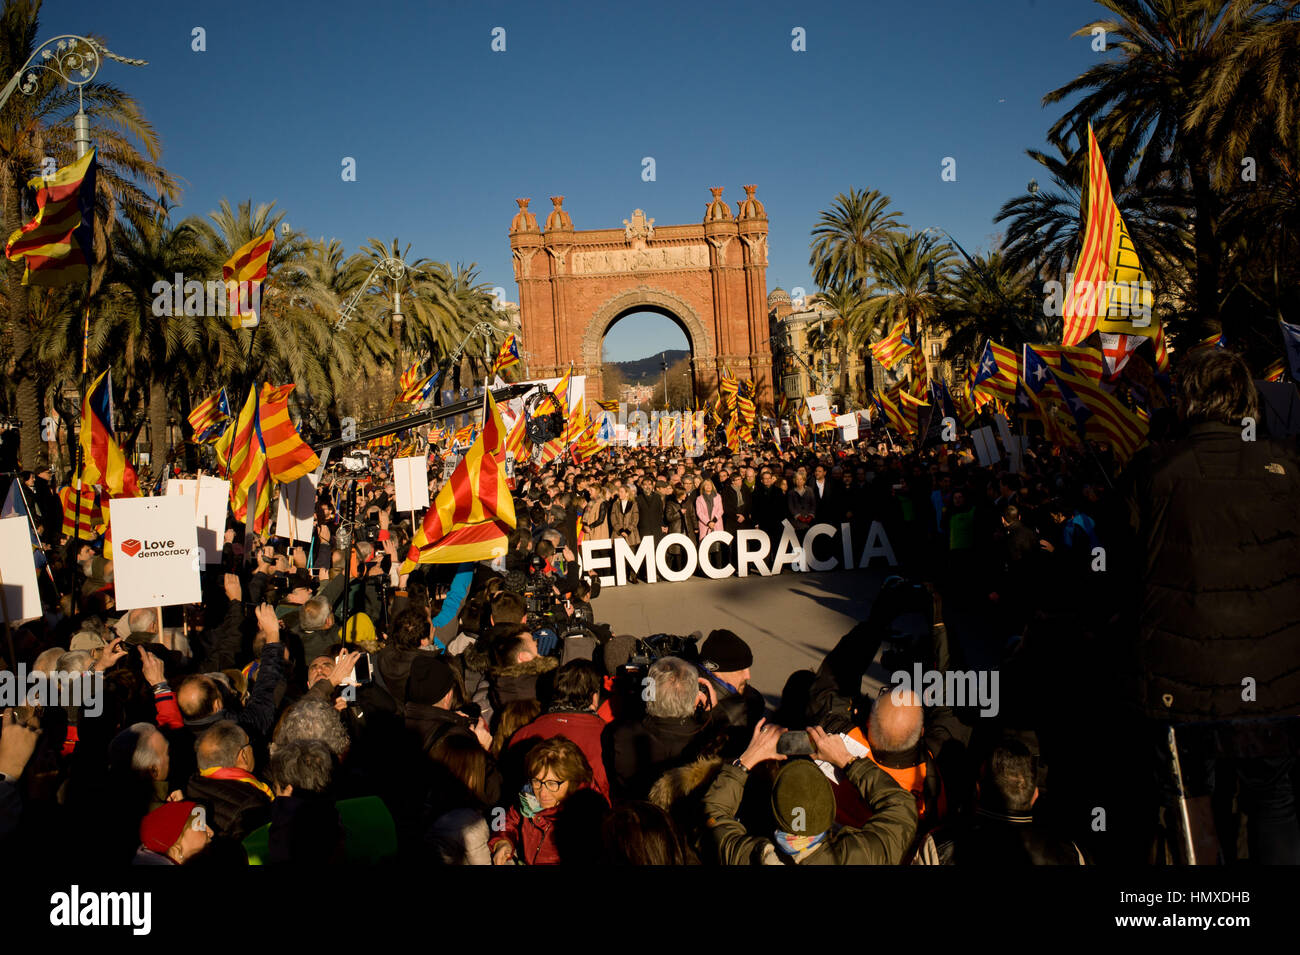 Barcelona, Catalonia, Spain. 6th Feb, 2017. Former Catalan President Artur Mas and members of the Catalan government Stock Photo